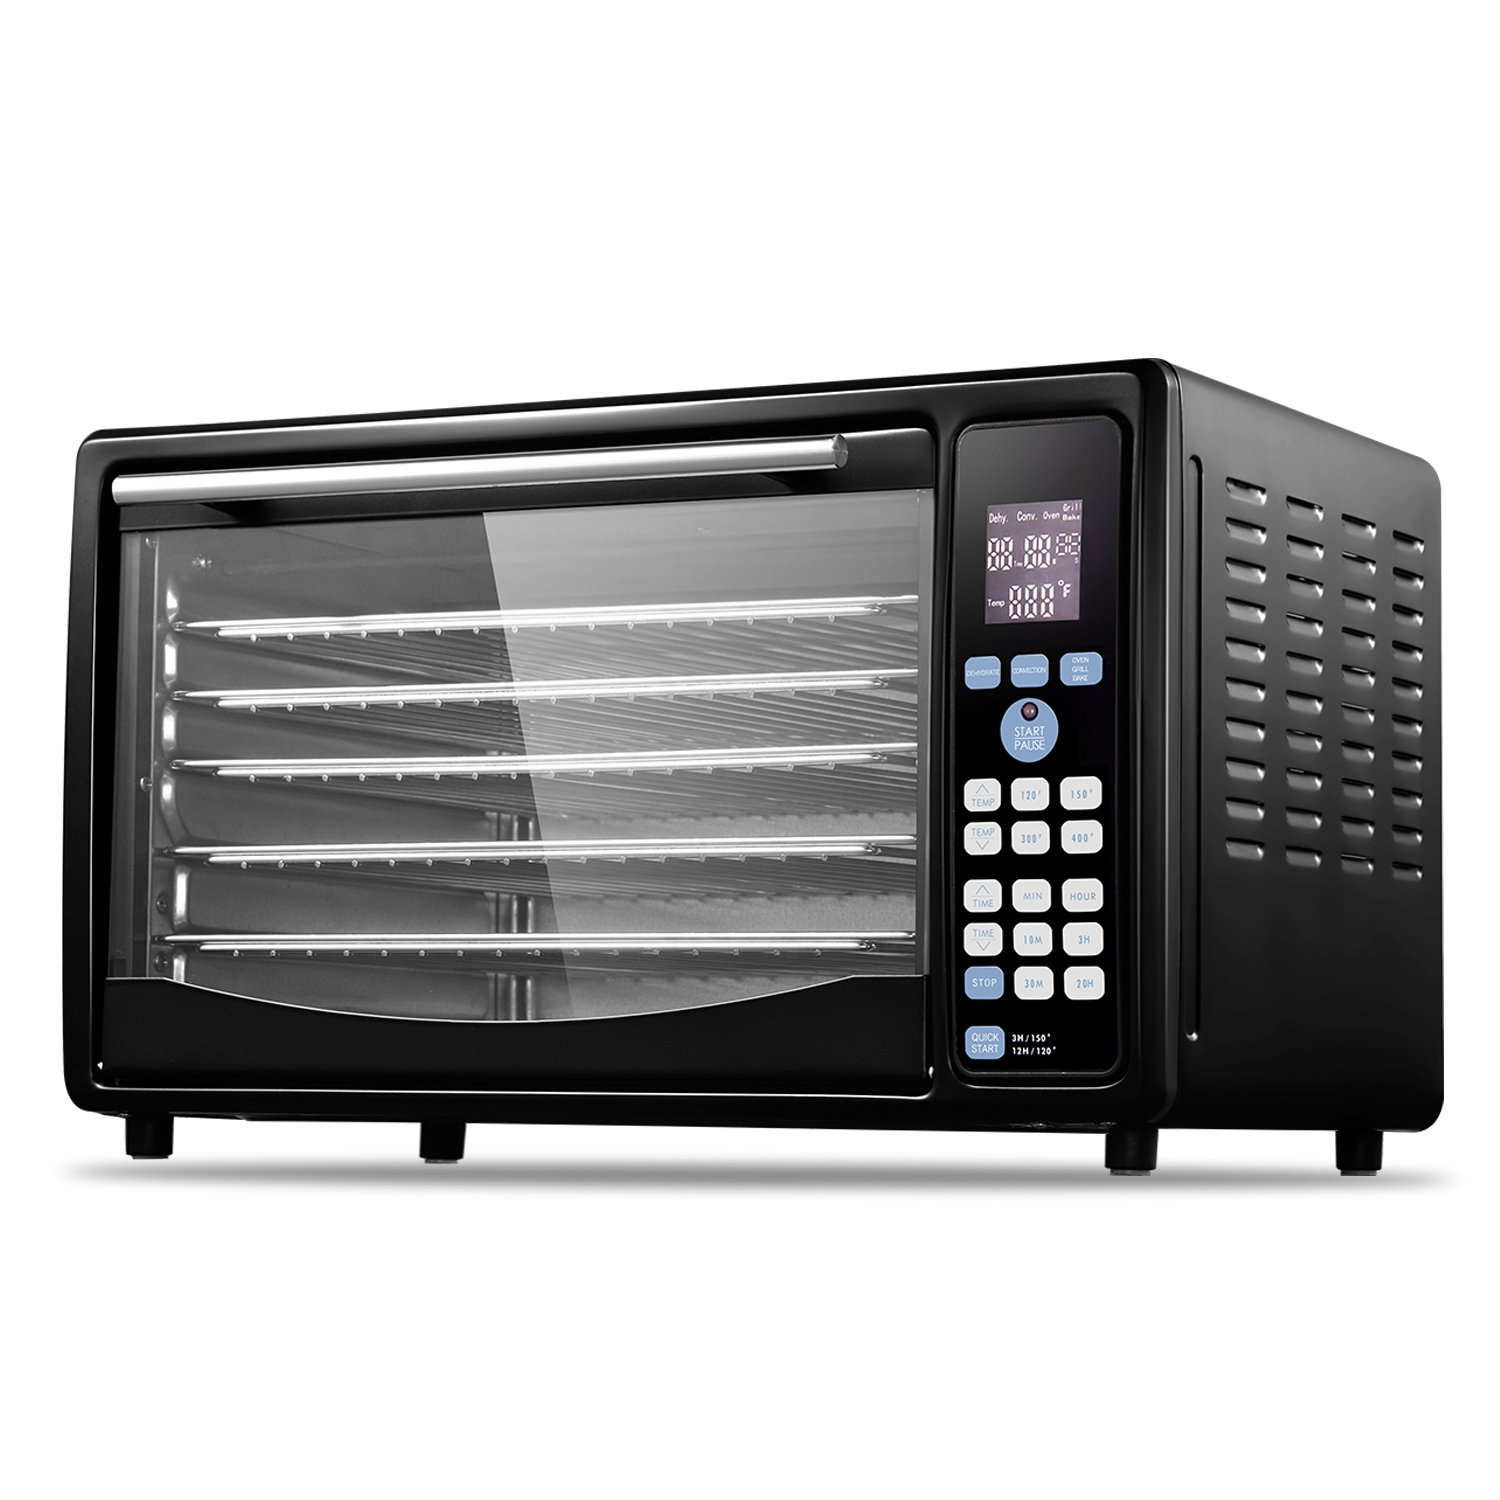 GOLUX Multi-Use Smart Convection Countertop Ovens with 5 Drying Trays, Digital Temperature Controls and Timer, with Food Dehydrator Function